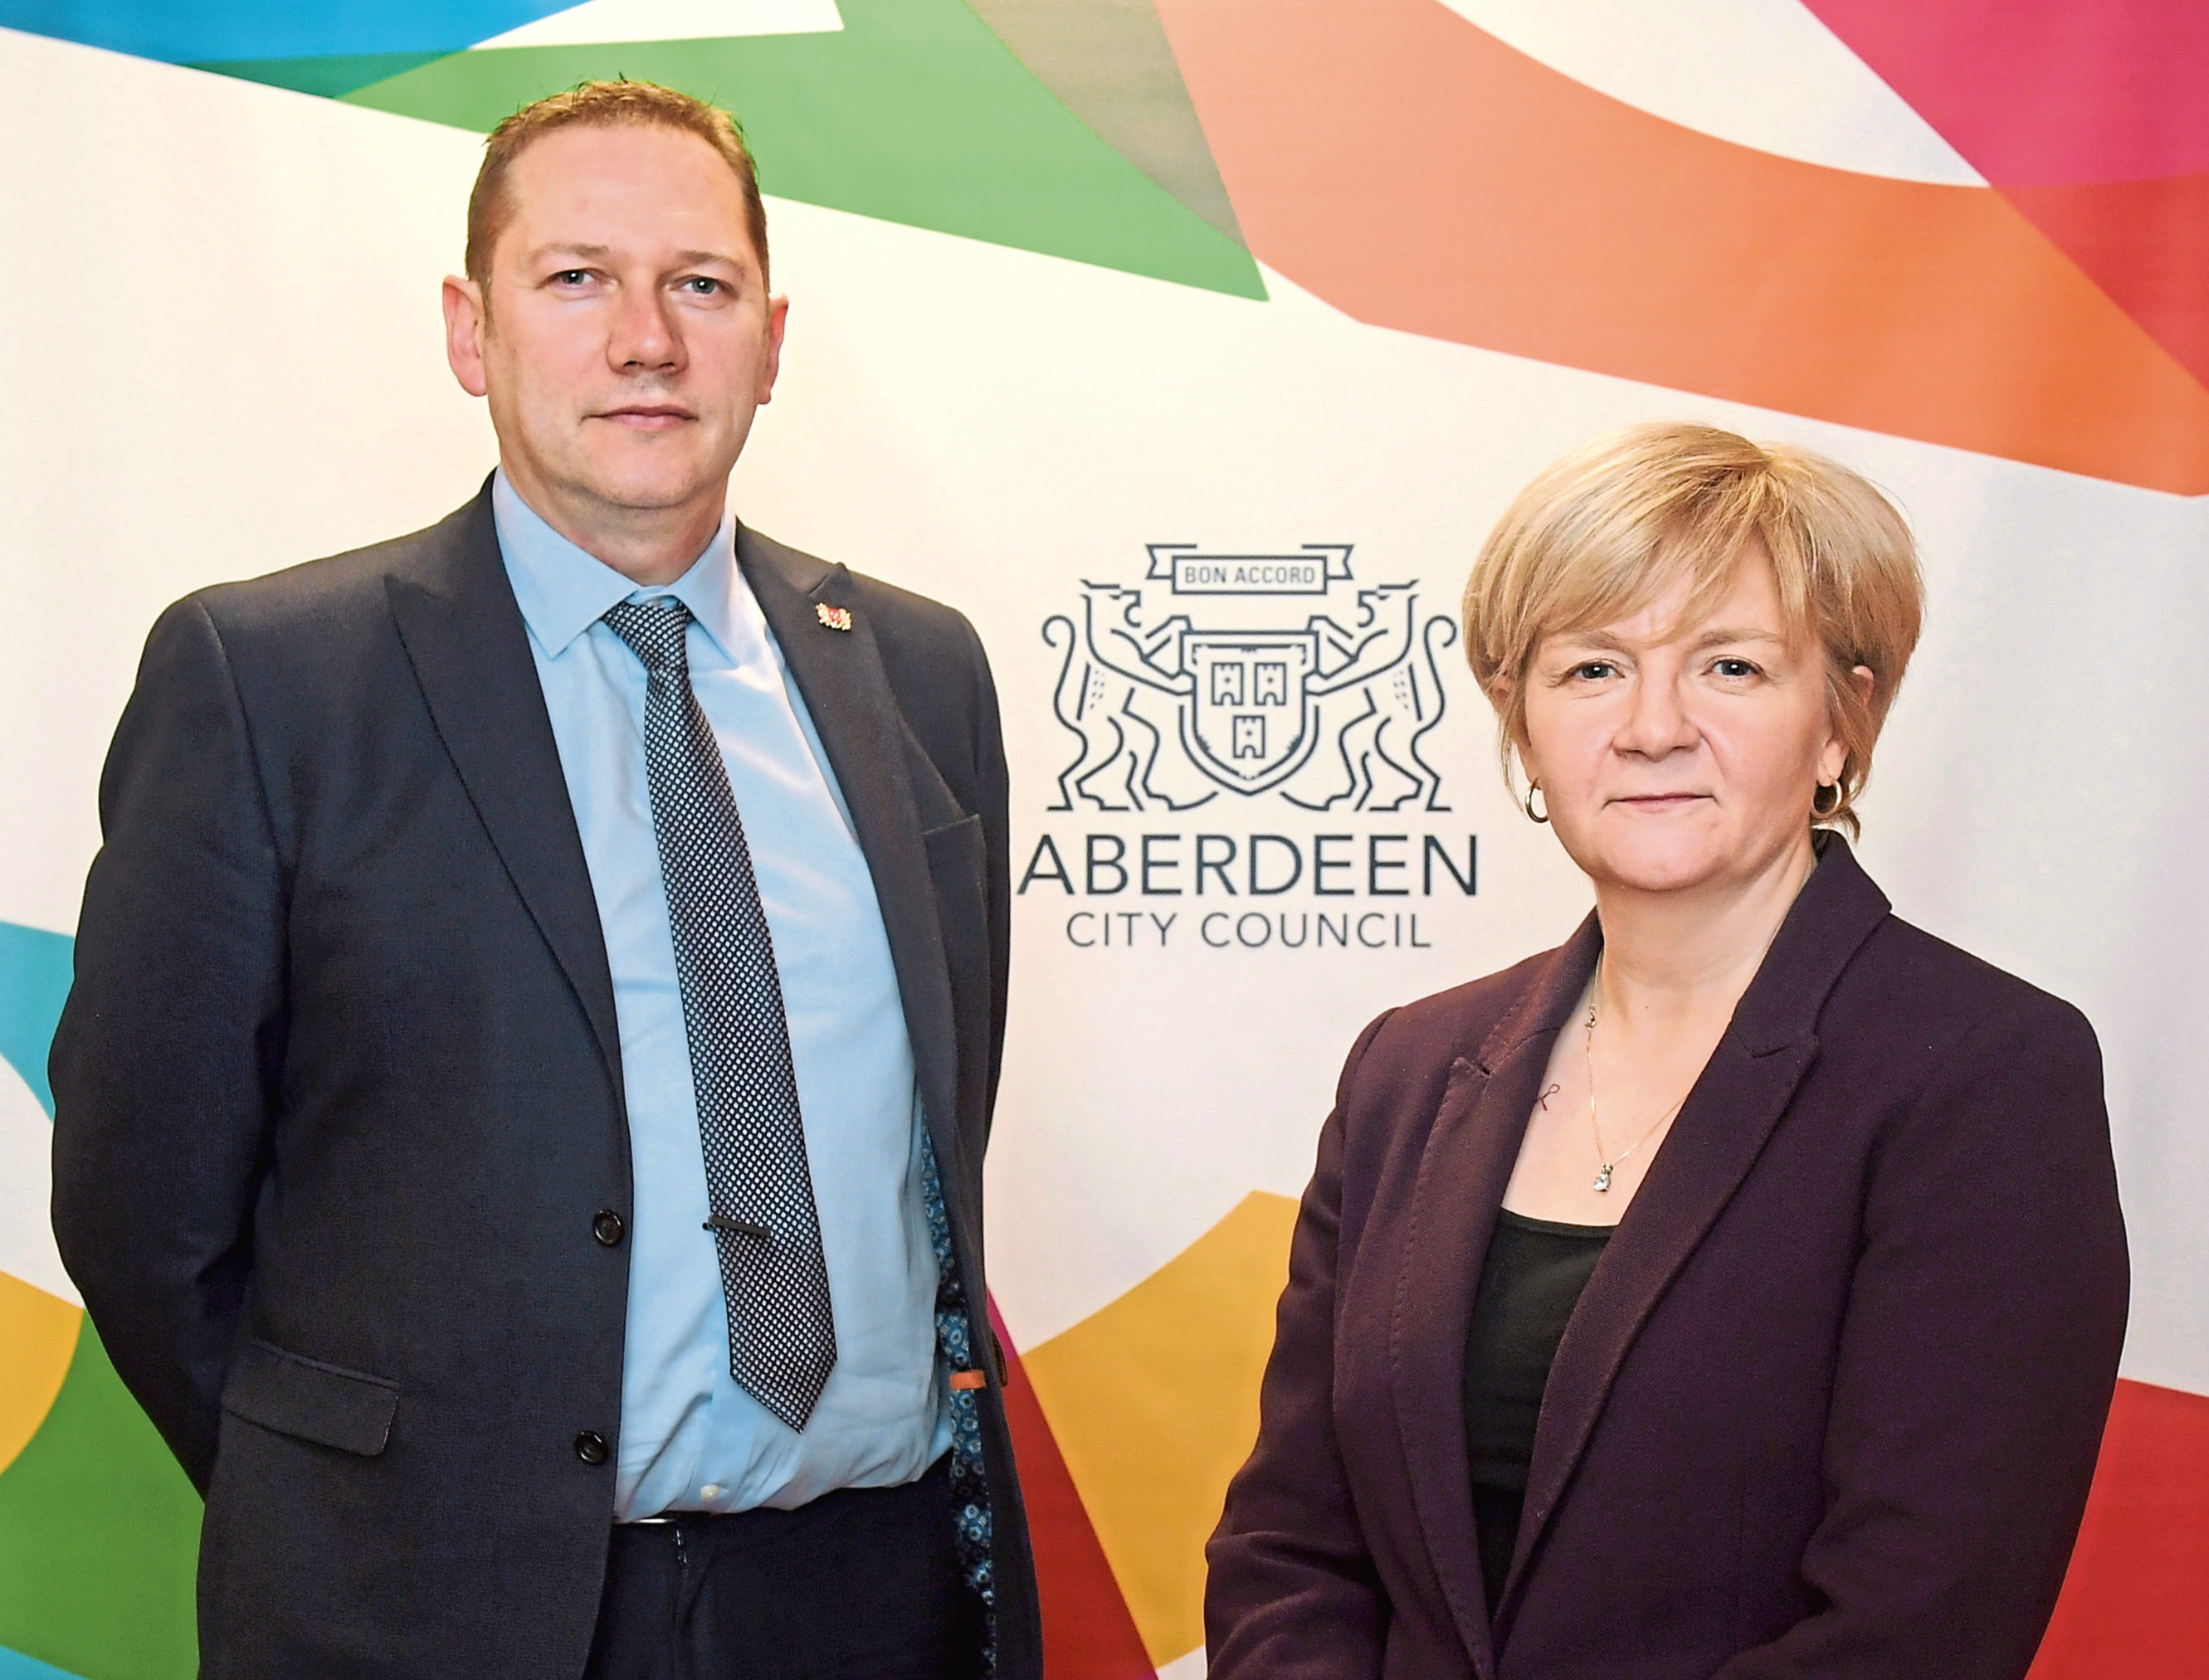 Co-leaders of Aberdeen City Council Douglas Lumsden and Jenny Laing